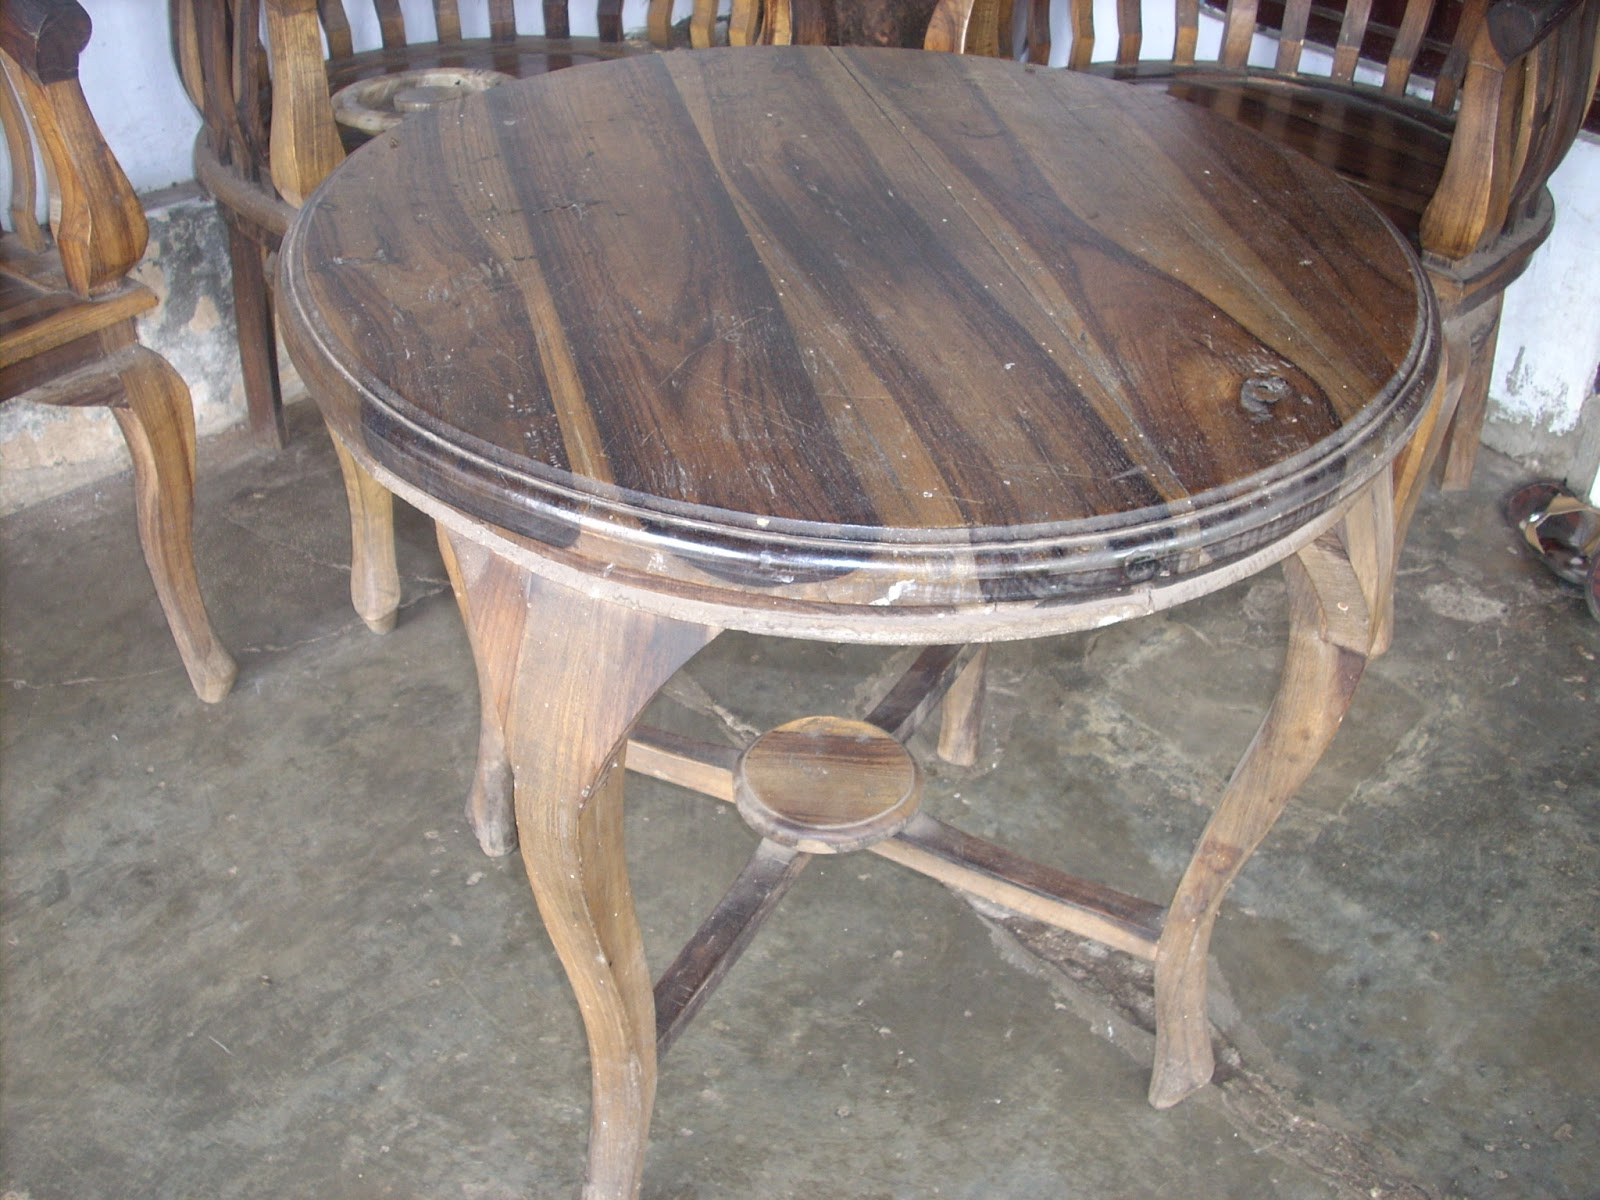 Furniture Wax Finish for Wood